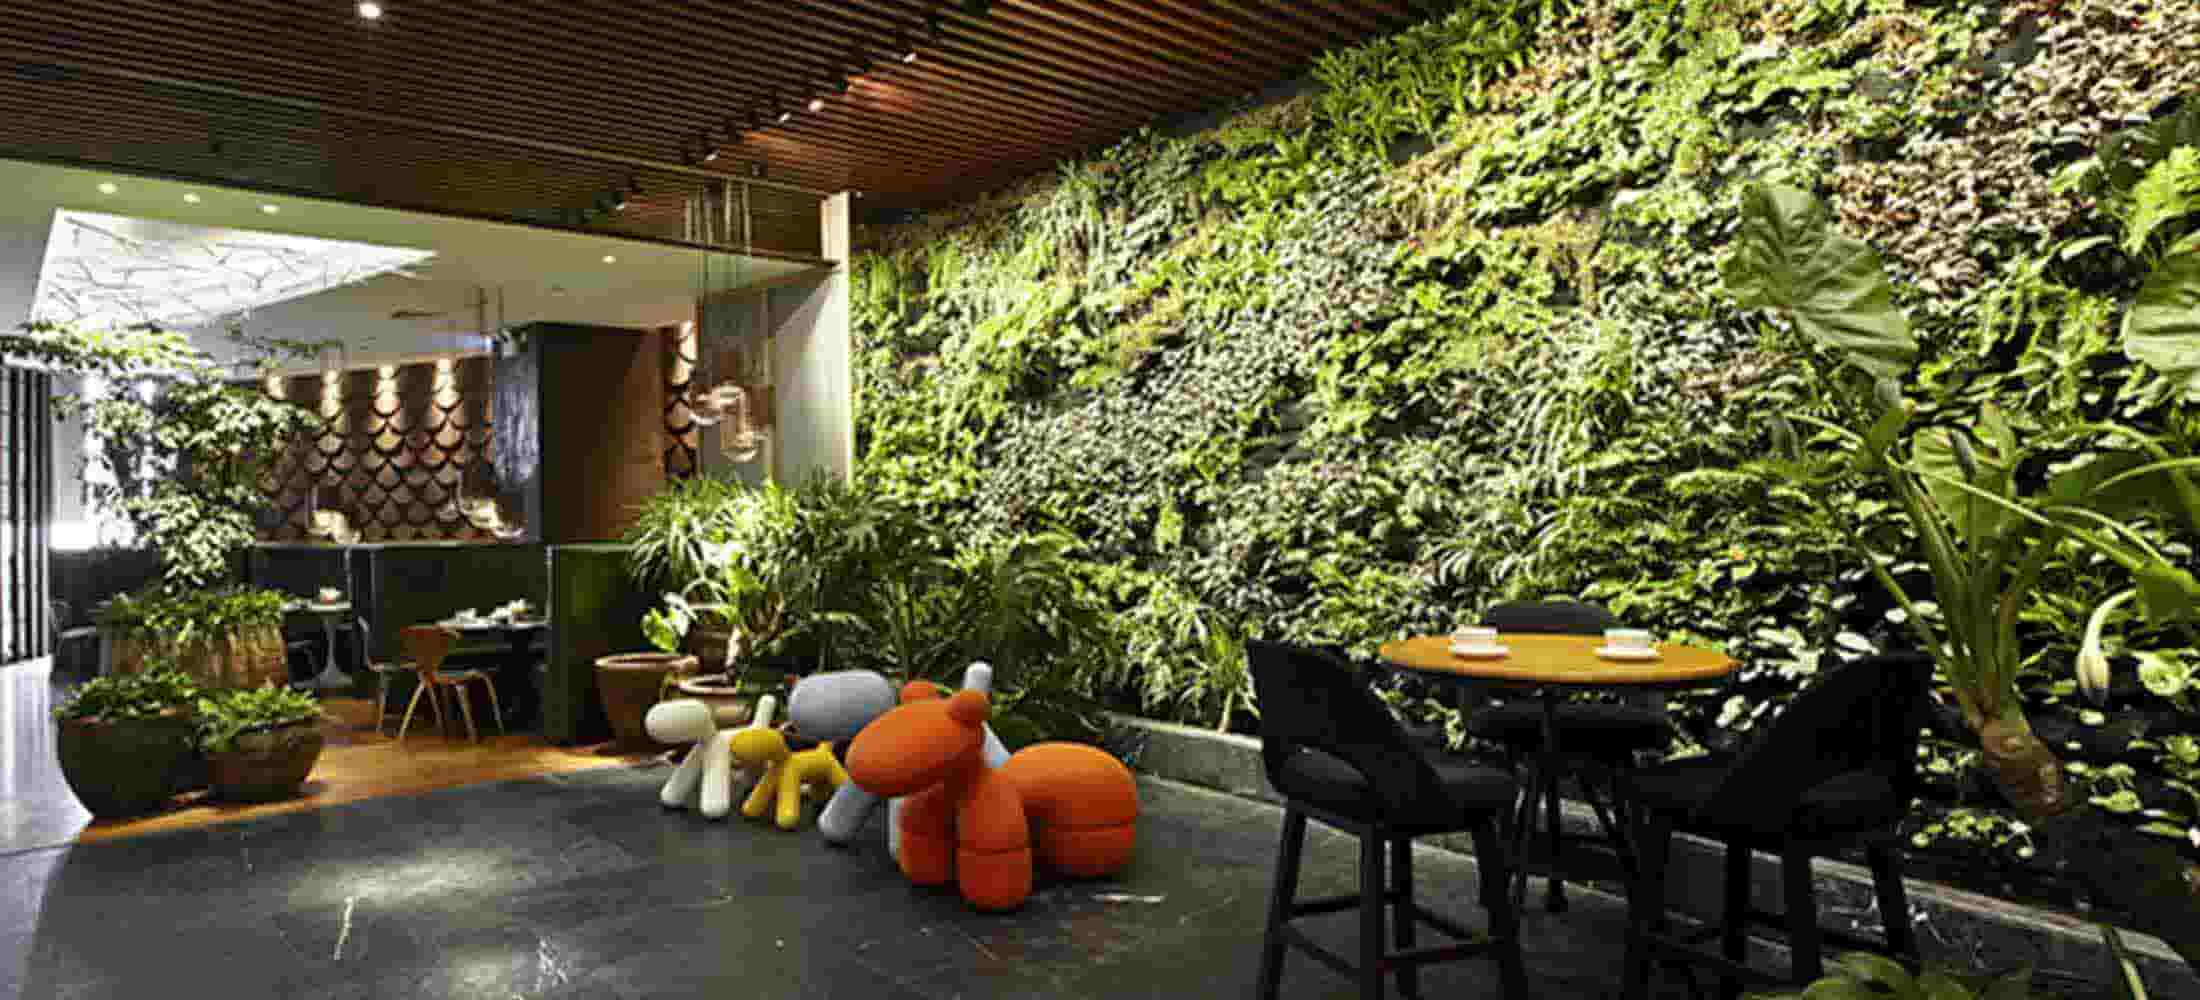 hotels check in to greener thinking